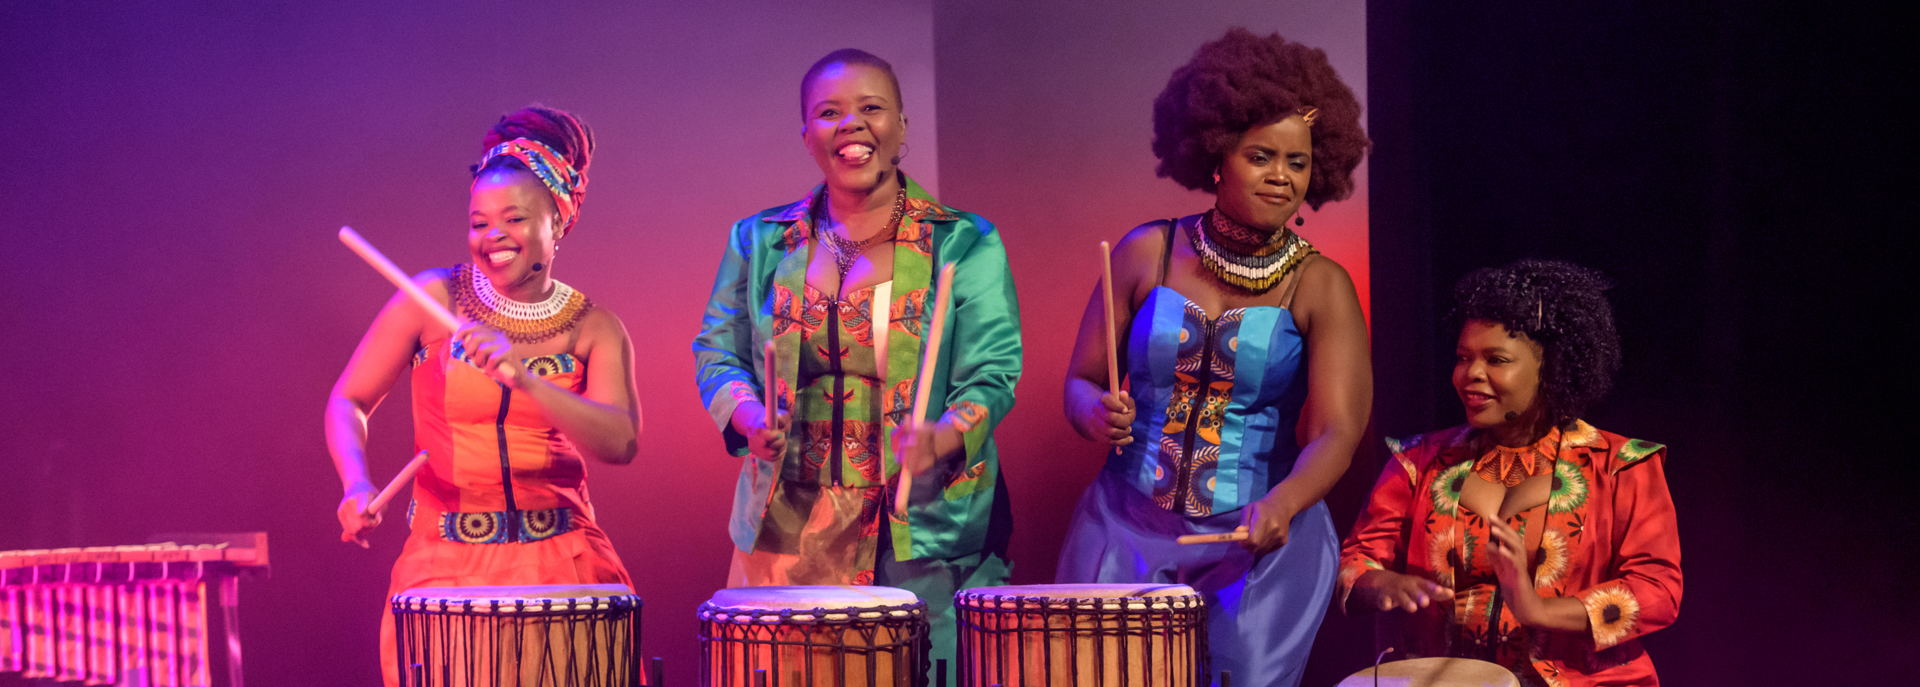 Abafazi stond in 2019 in De Tamboer met Black, Brave & Beautiful